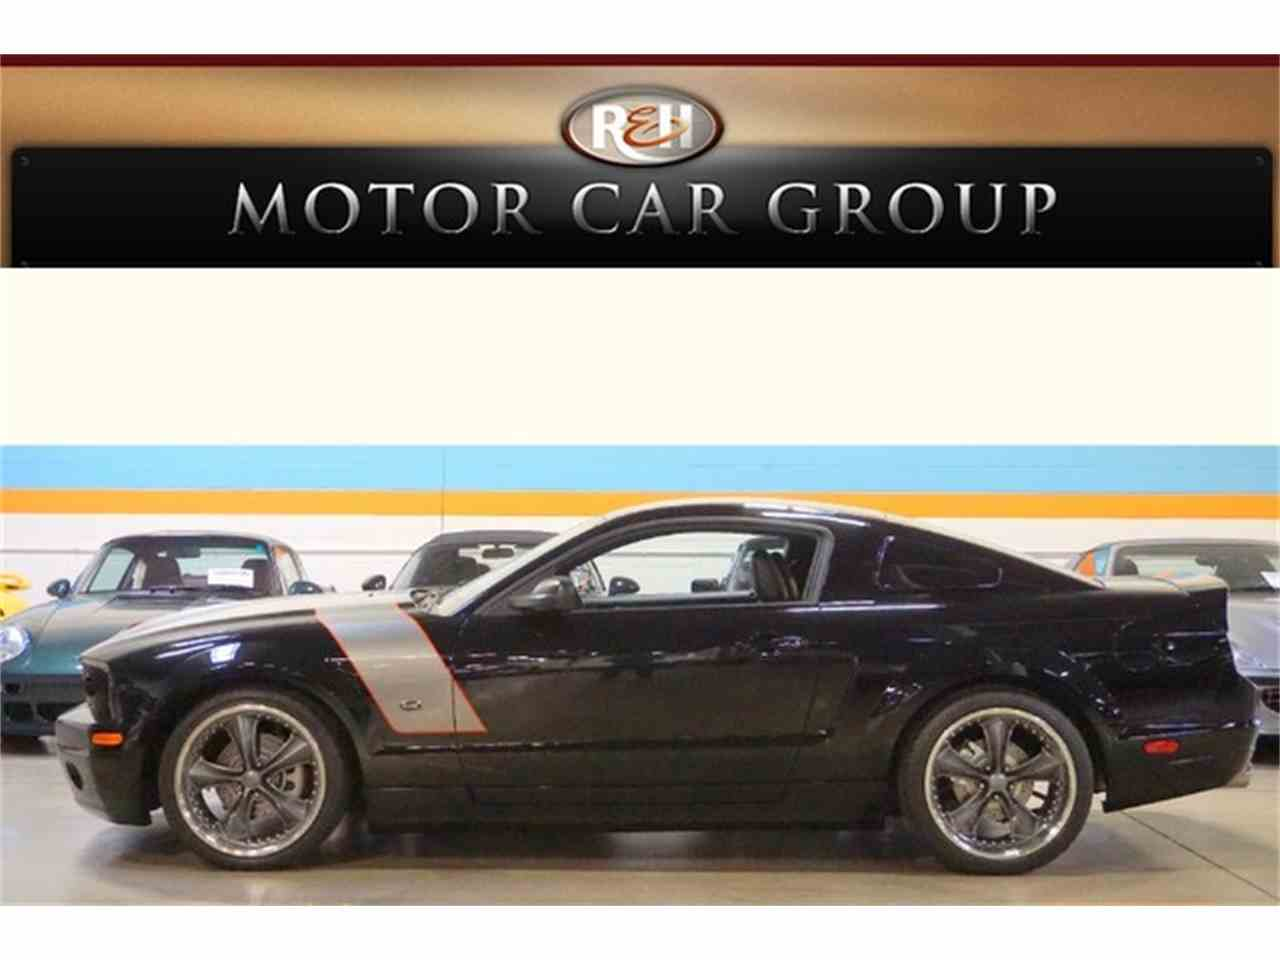 Large Picture of '06 Ford Mustang located in Ohio Offered by R&H Motor Car Group - ETC2